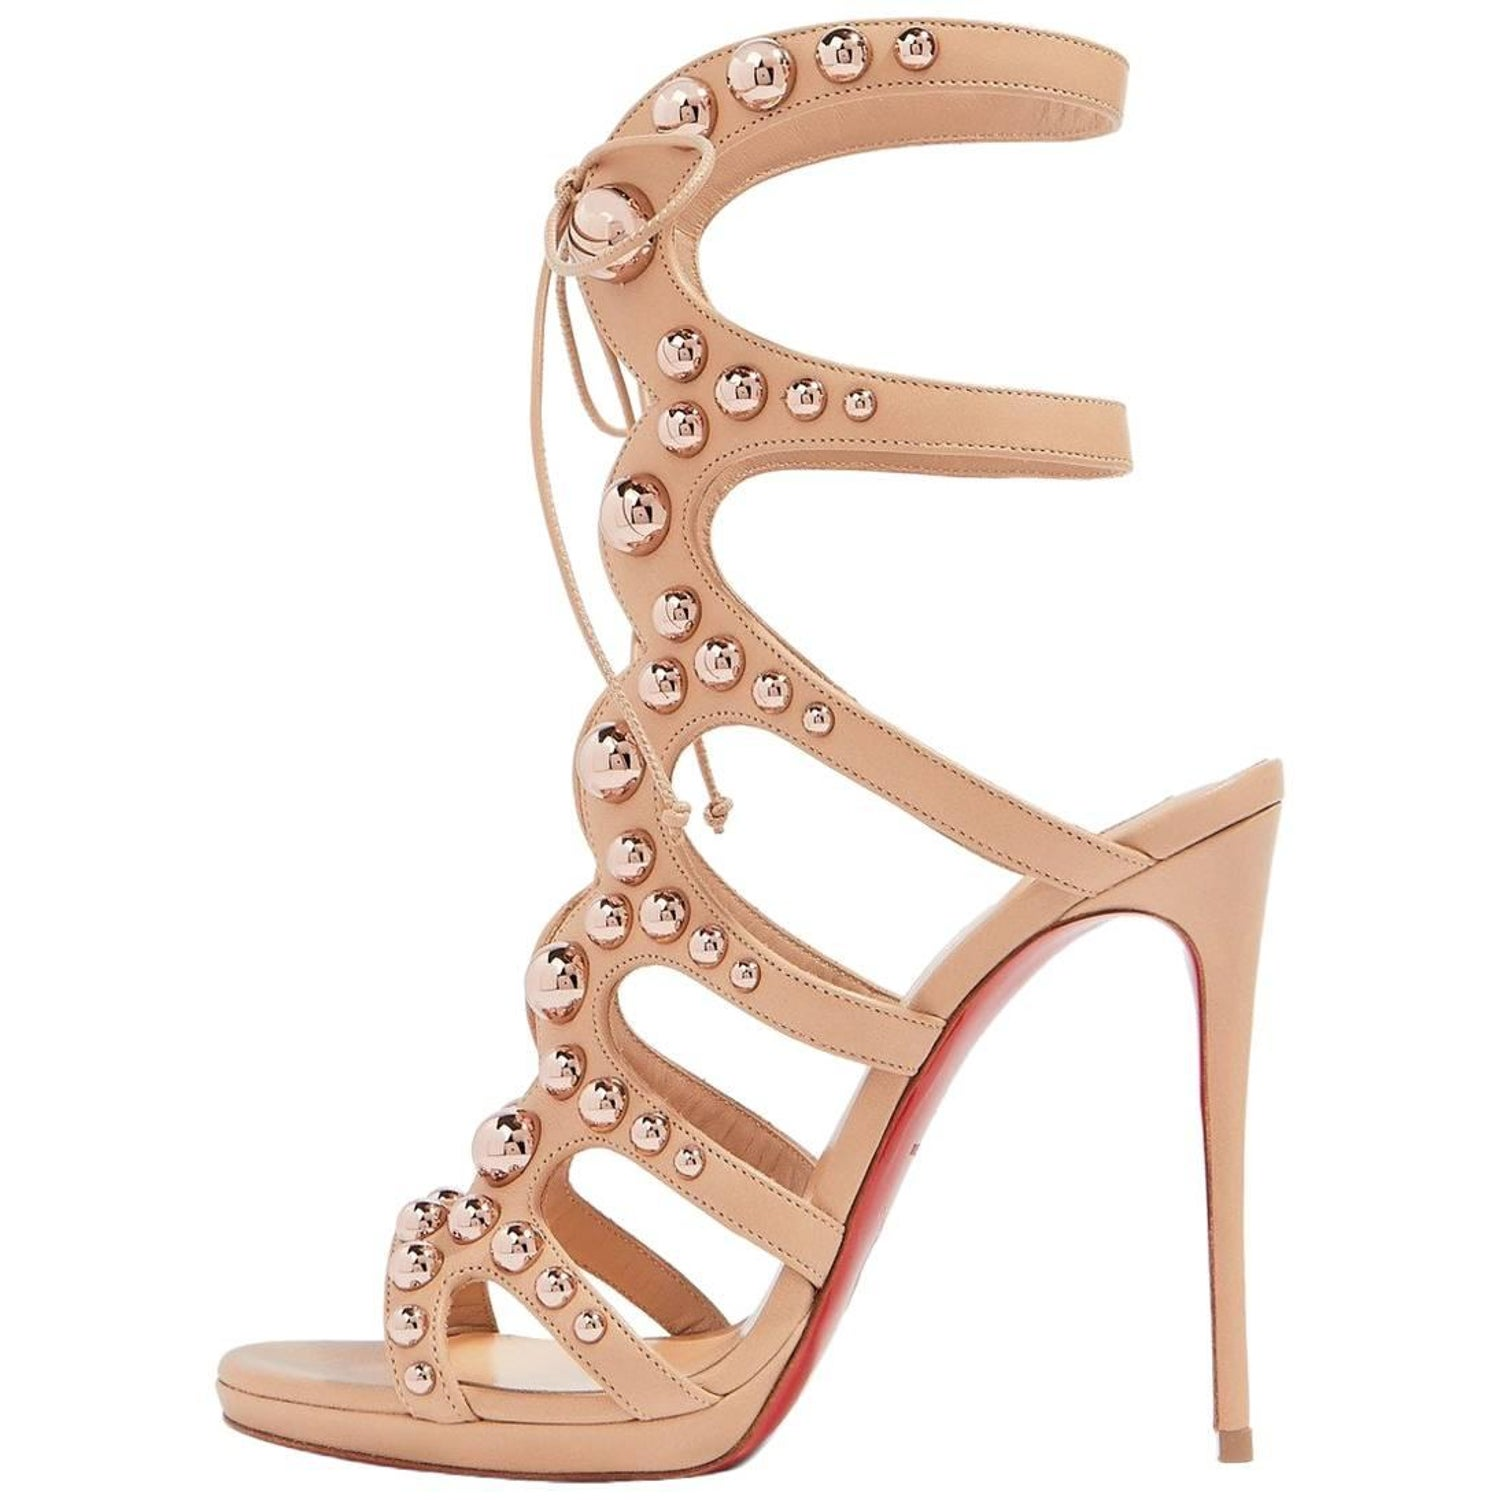 857d5852430ff8 Christian Louboutin Nude Leather Rose Gold Gladiator Sandals Heels For Sale  at 1stdibs